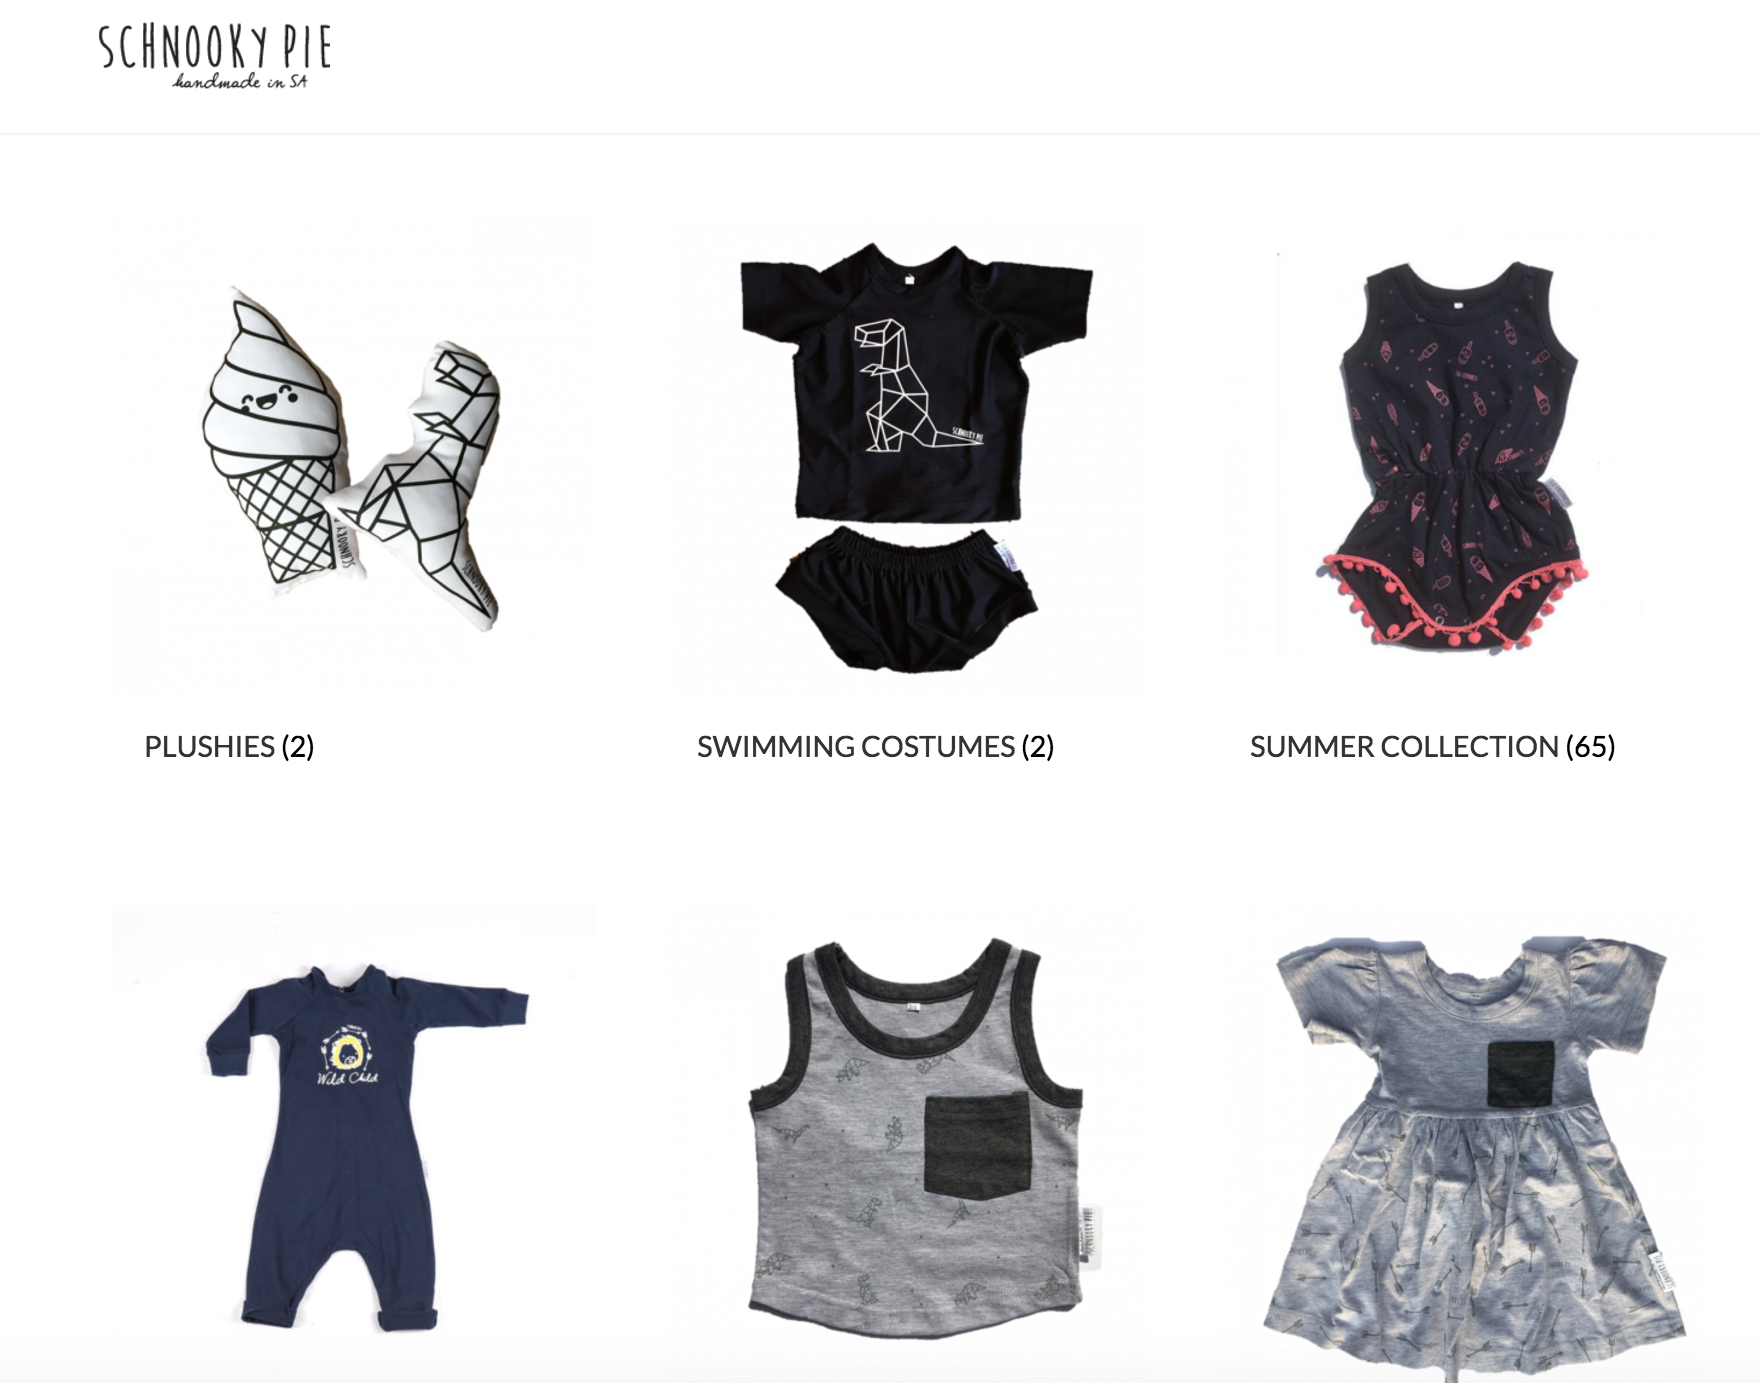 Schnooky Pie - exclusive South African baby clothing brand